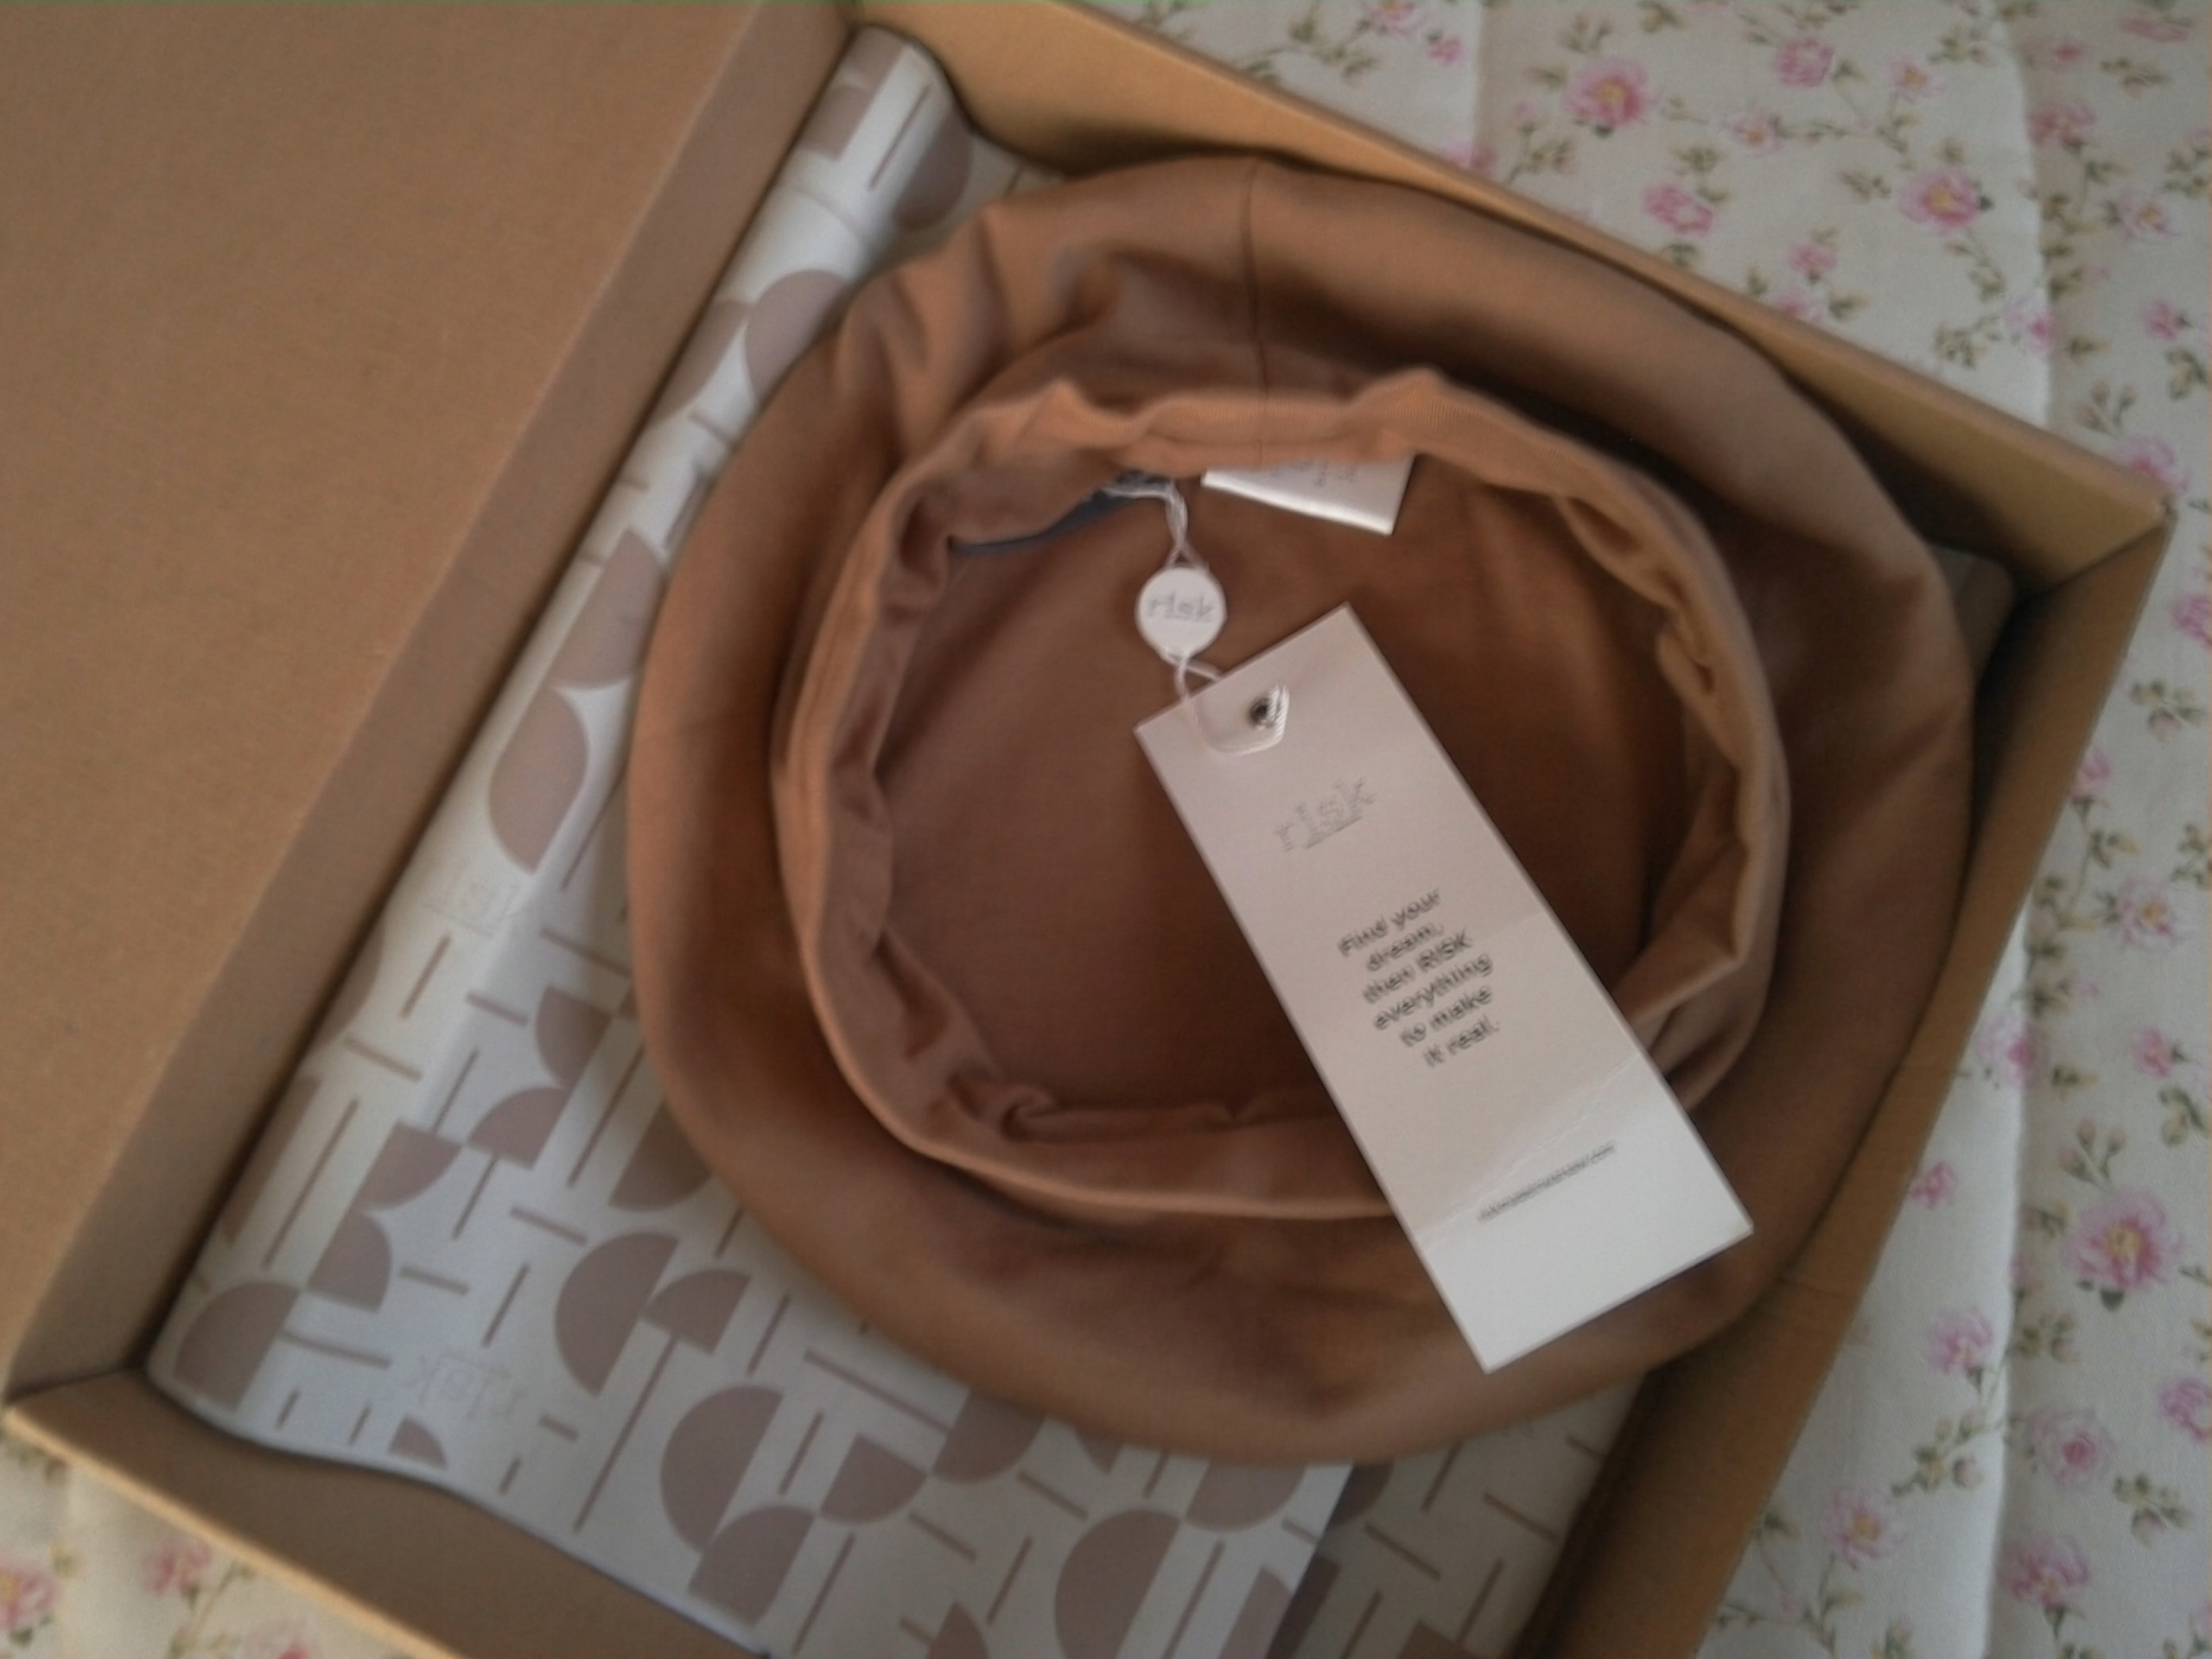 FRENCH KISS beret CAMEL S RISK made in Warsaw